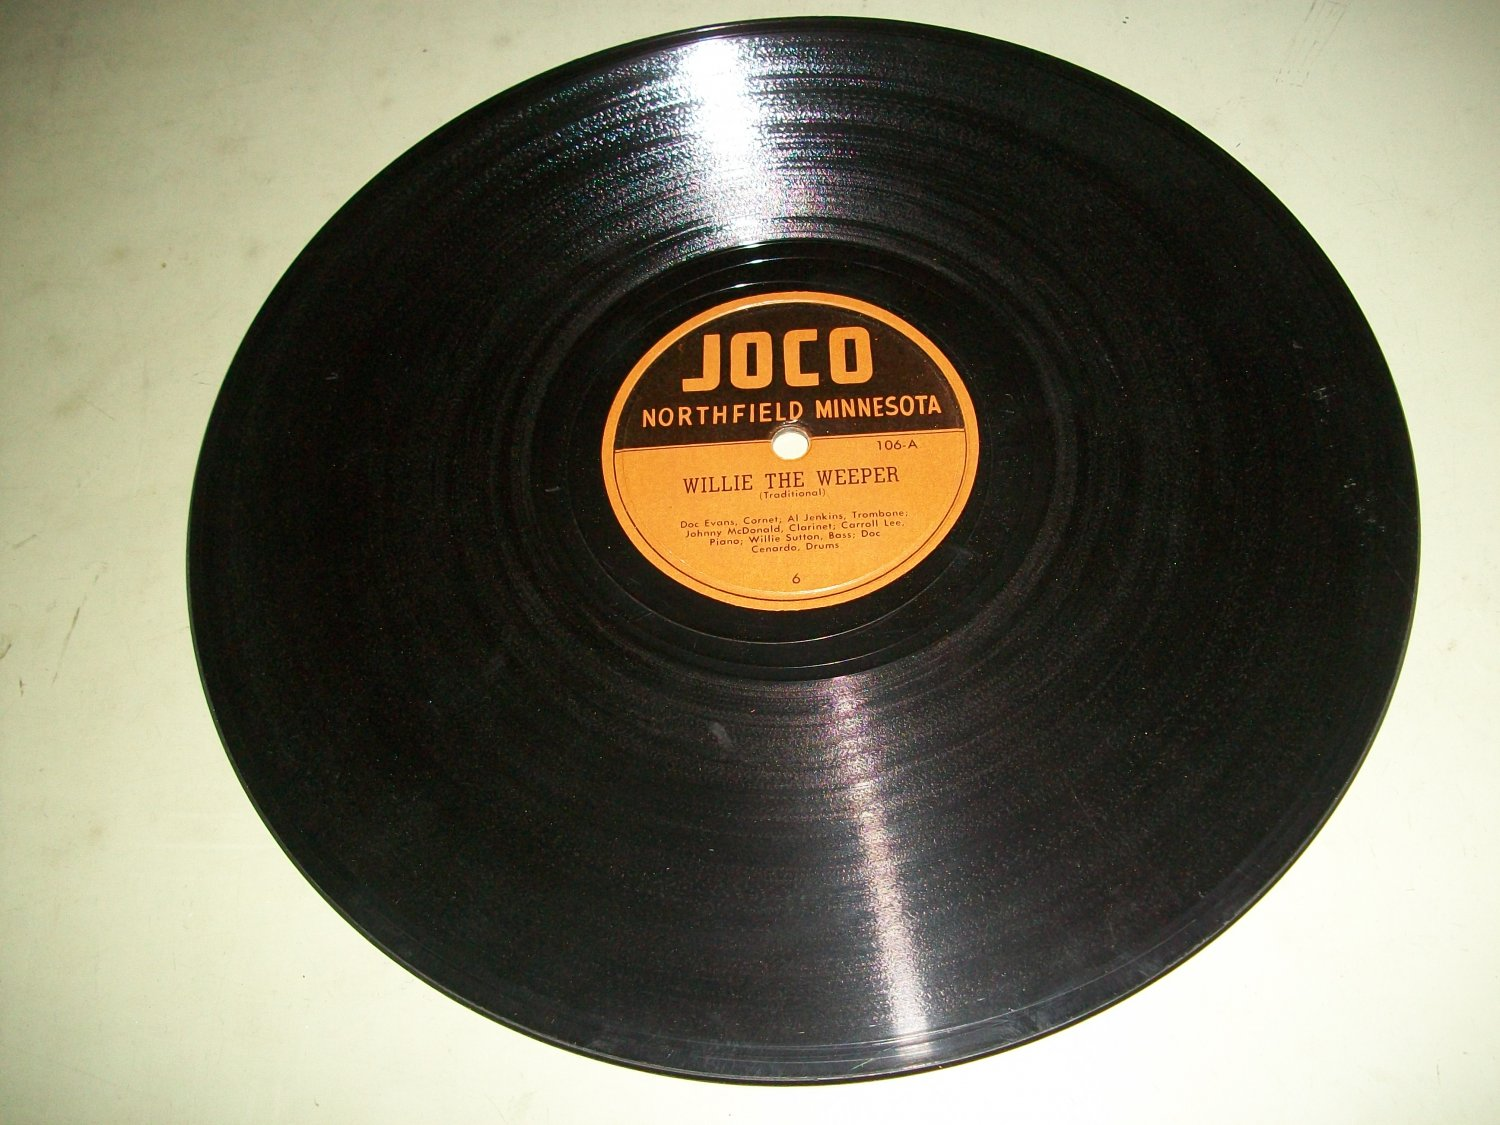 Doc Evans - Willie The Weeper - JOCO 106  - 78 rpm Jazz Record